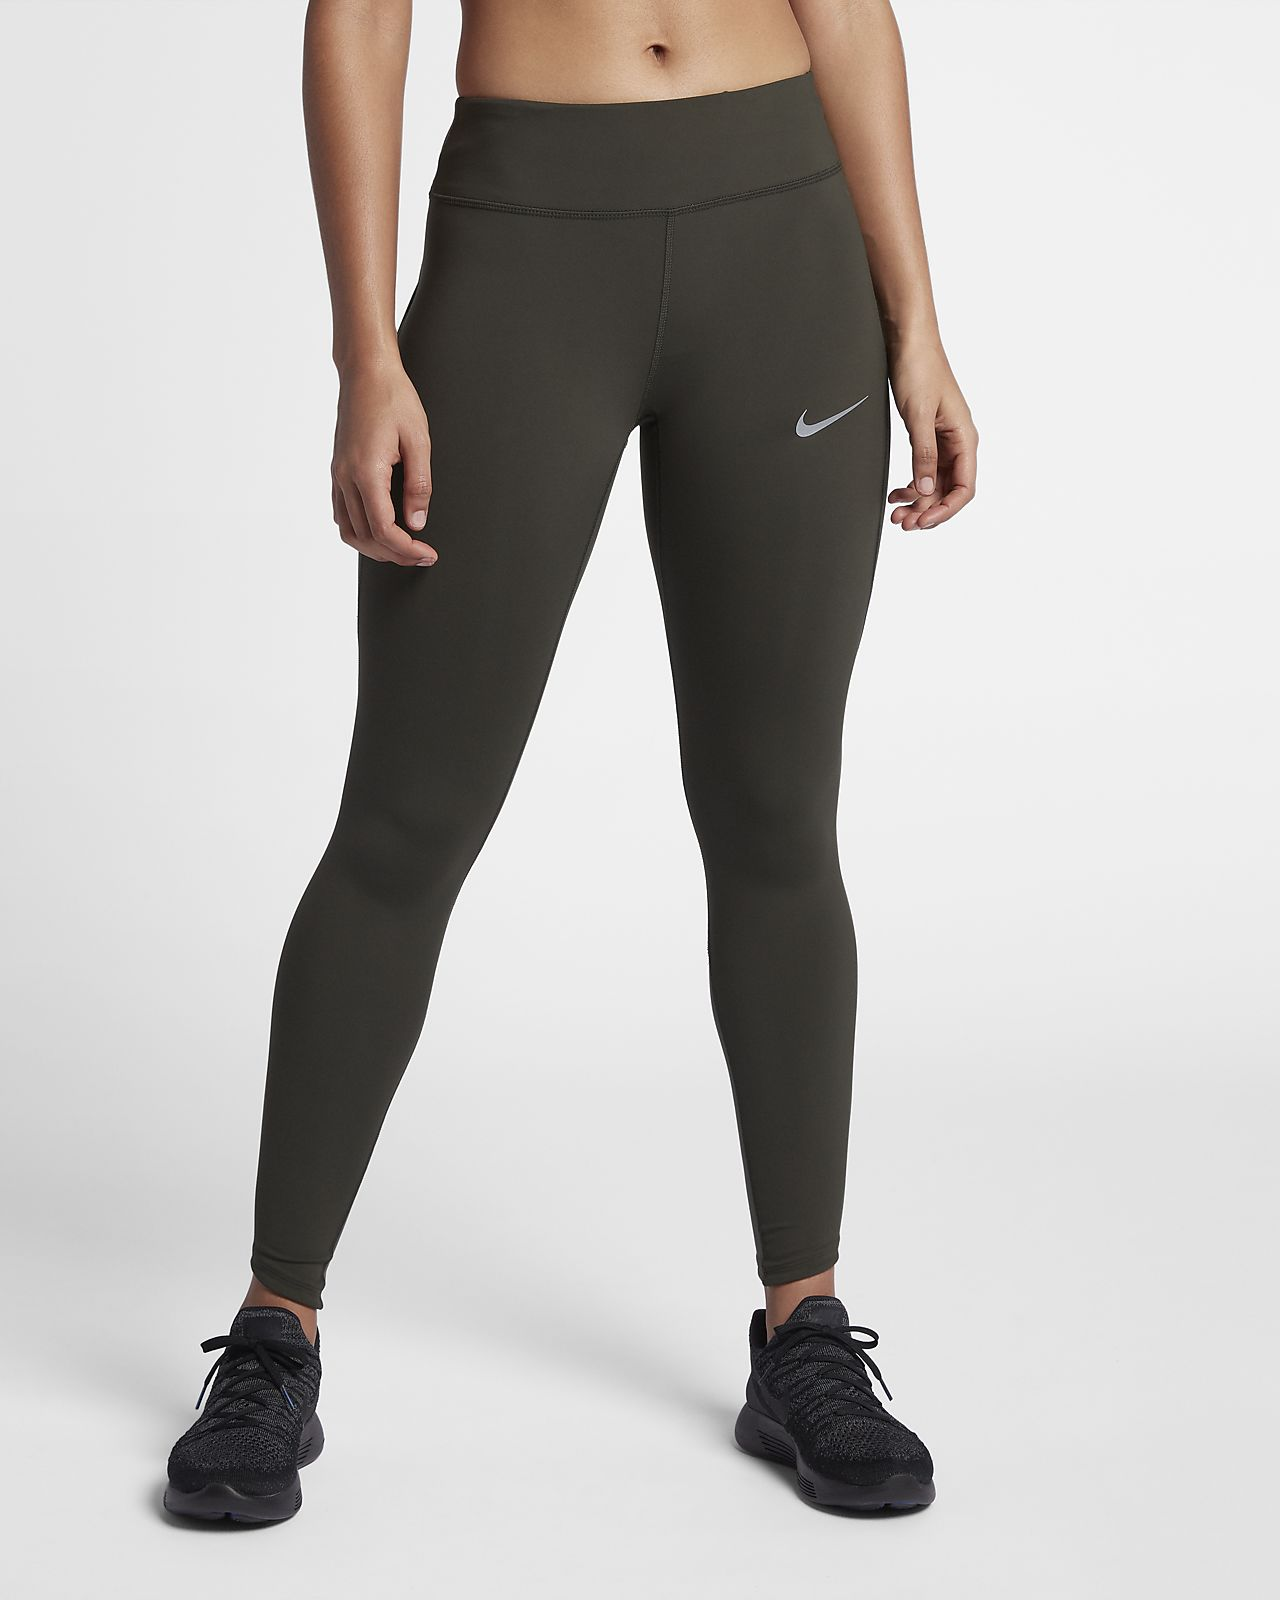 Running Tights Nike Epic Lux Women's 25.5\